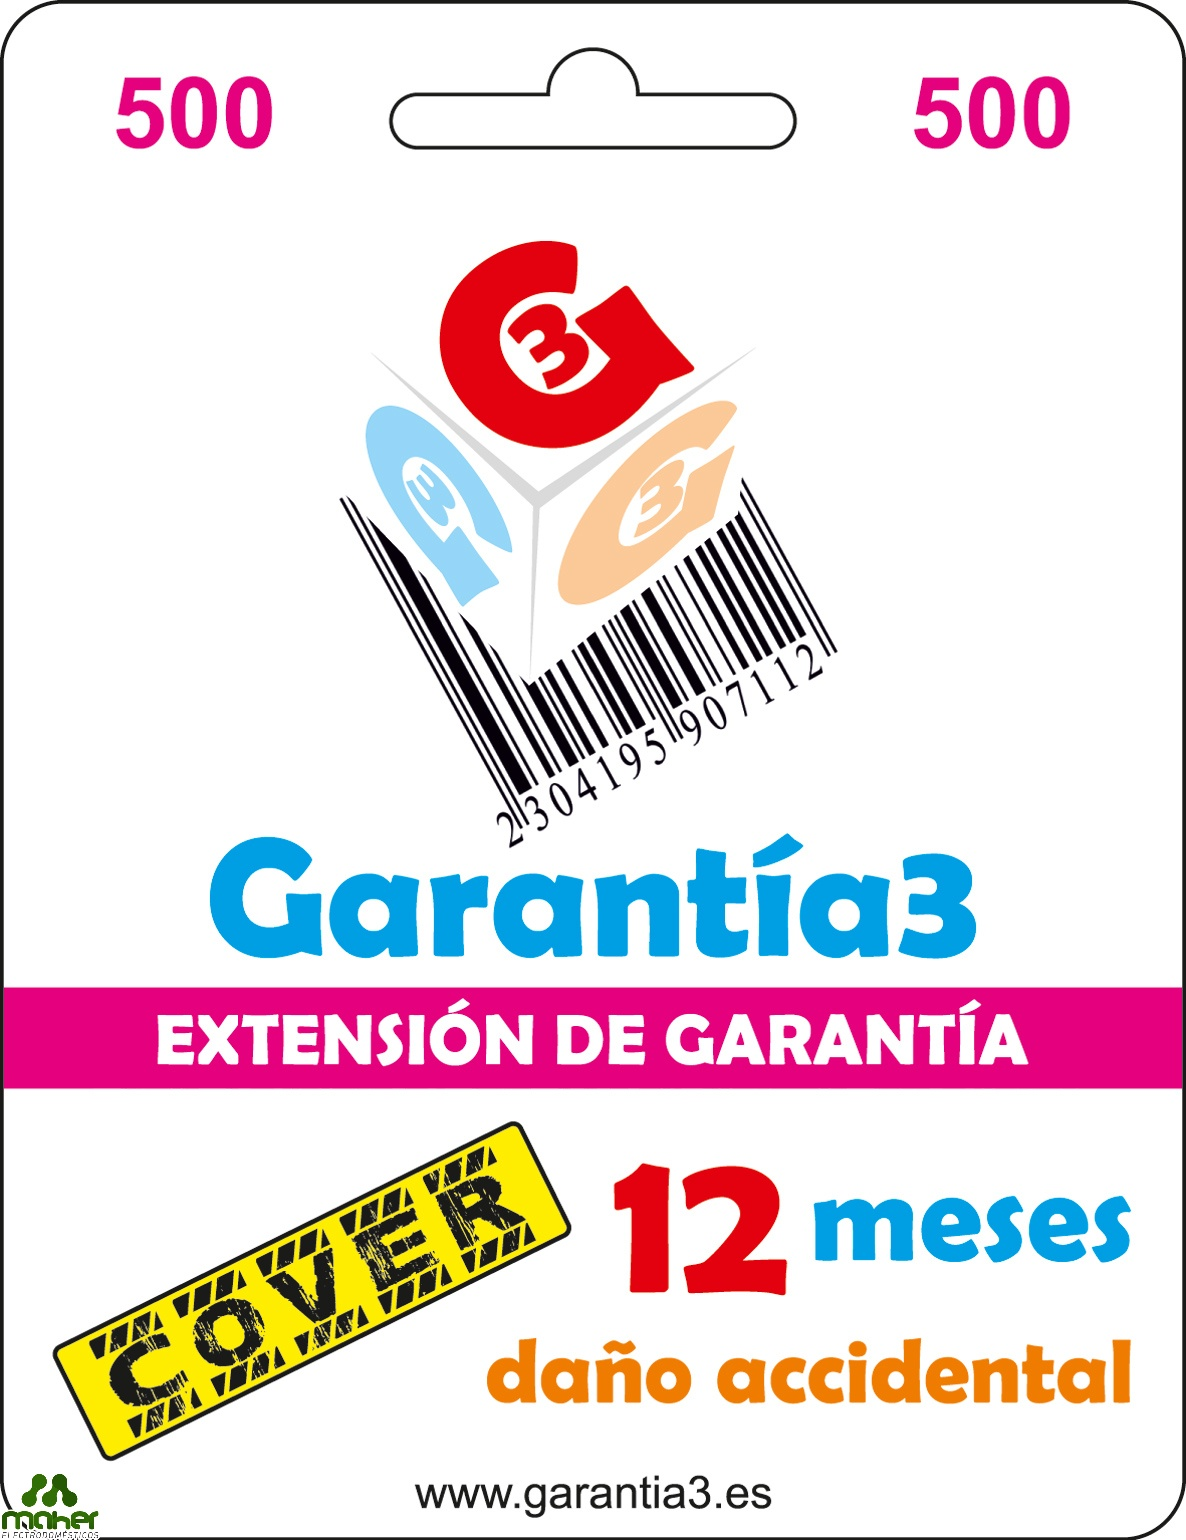 EXTENSION GARANTIA 12 MESES PARA DAÑO ACCIDENTAL 500€